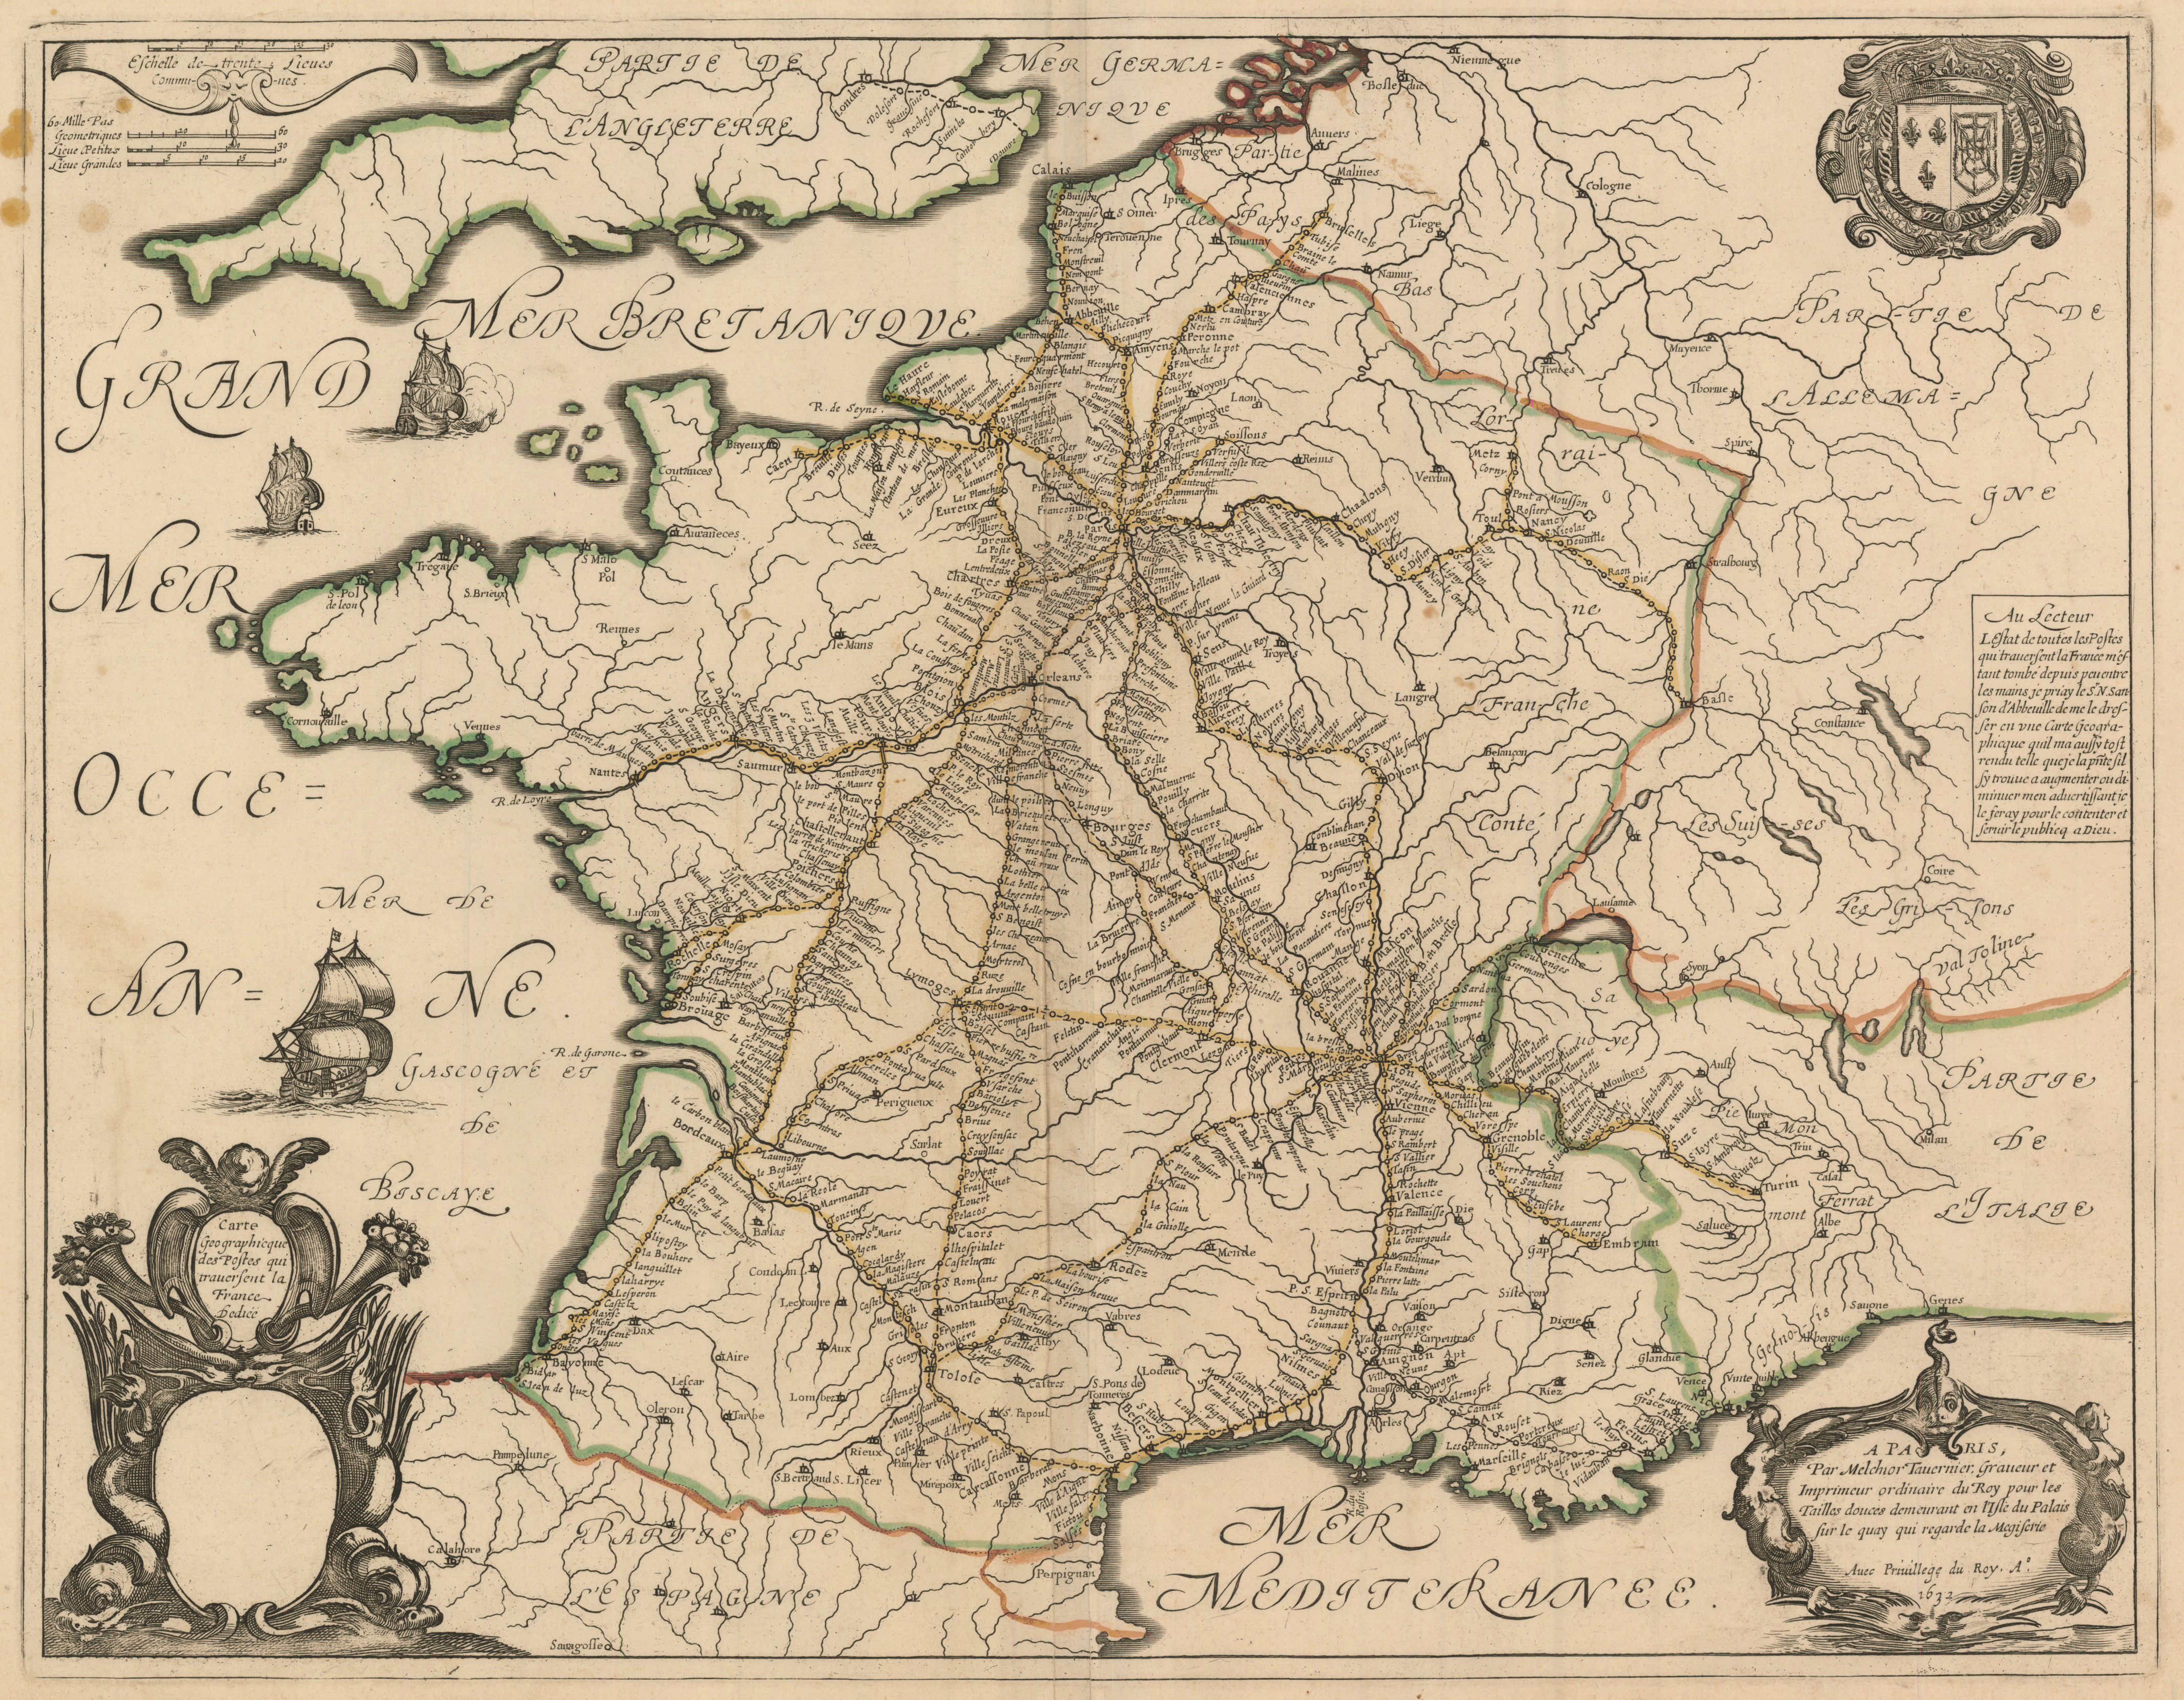 Physical Map Of France Outline.File Tavernier France Postal Route Map 1632 Jpg Wikimedia Commons